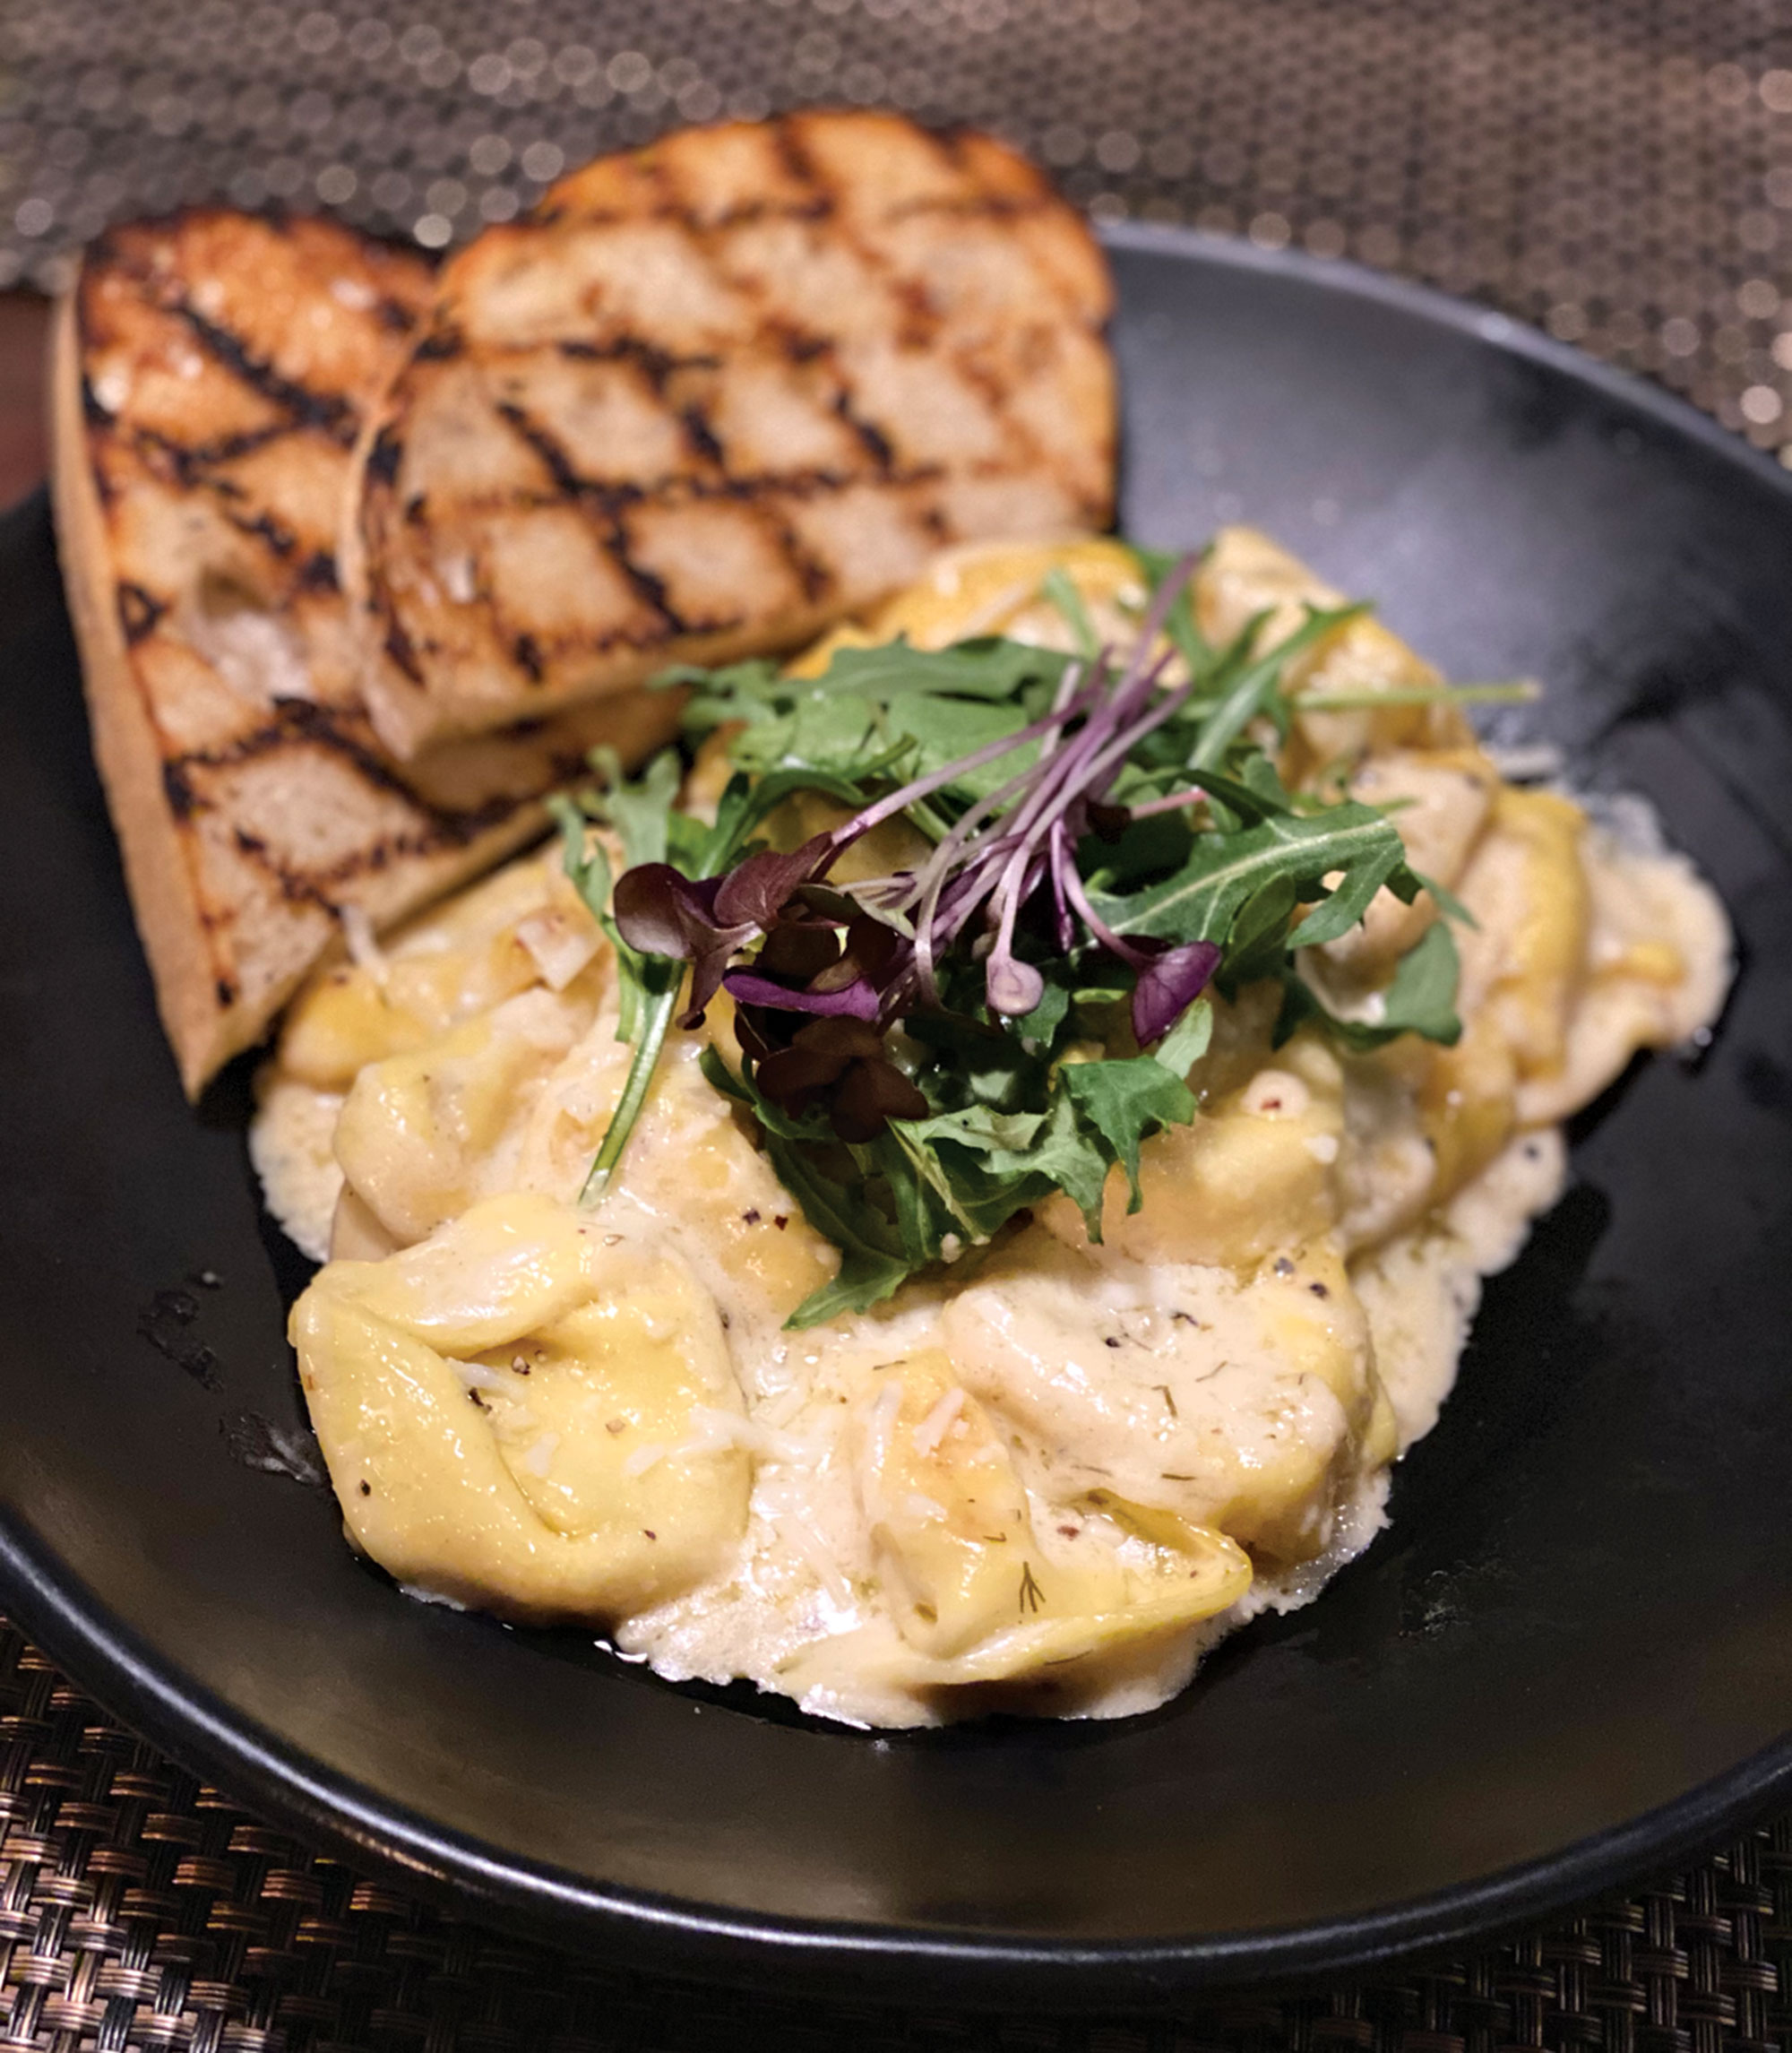 Tortellini mac and cheese at The Clinkscale; Photo by Madison Rutherford